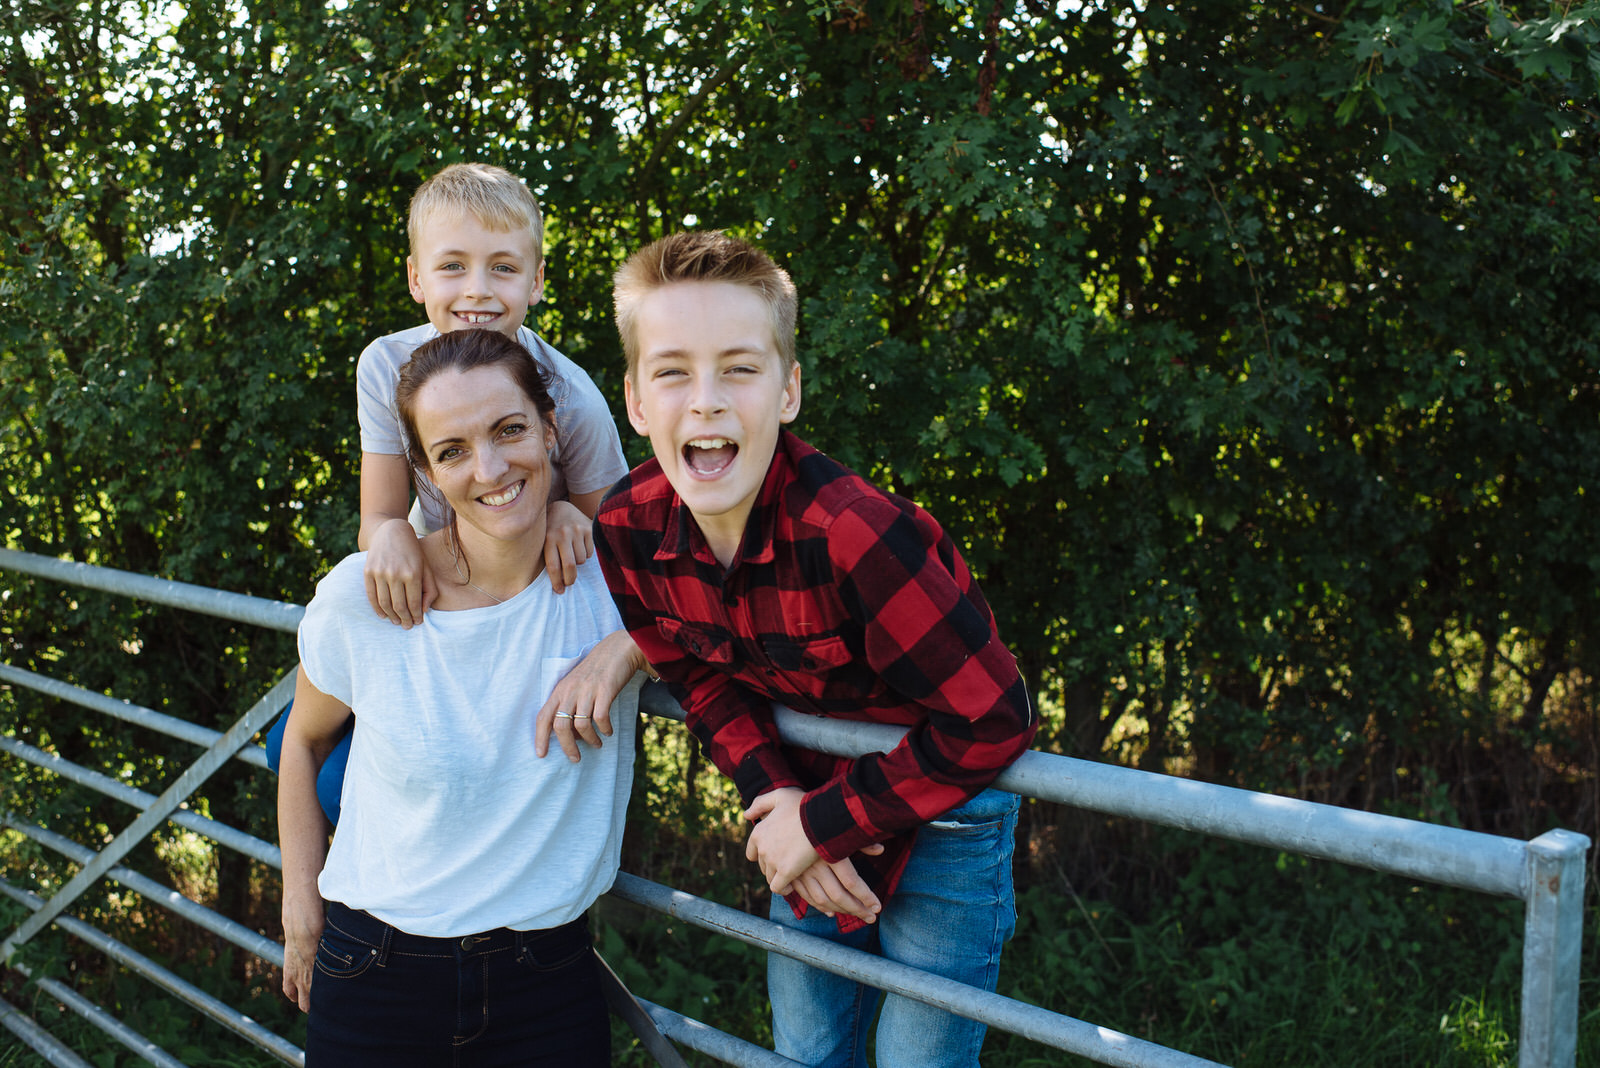 Mum and two sons pose for photo on metal gate